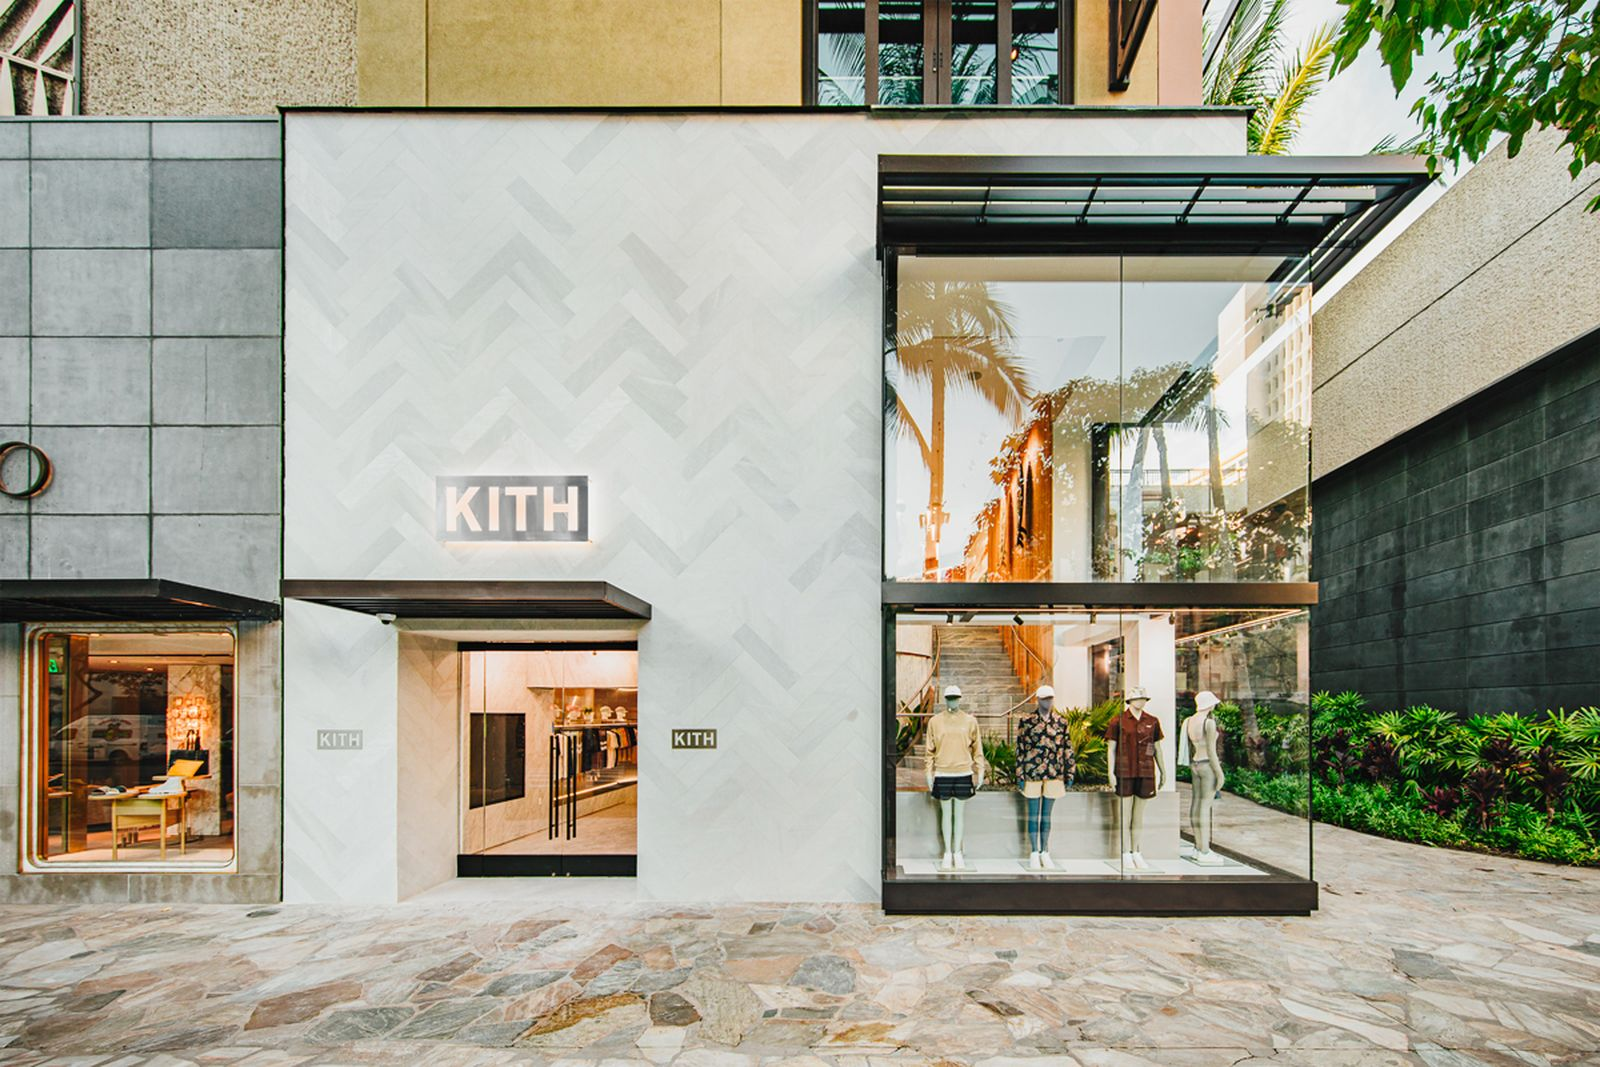 kith-hawaii-store-inside-air-force-1 (1)